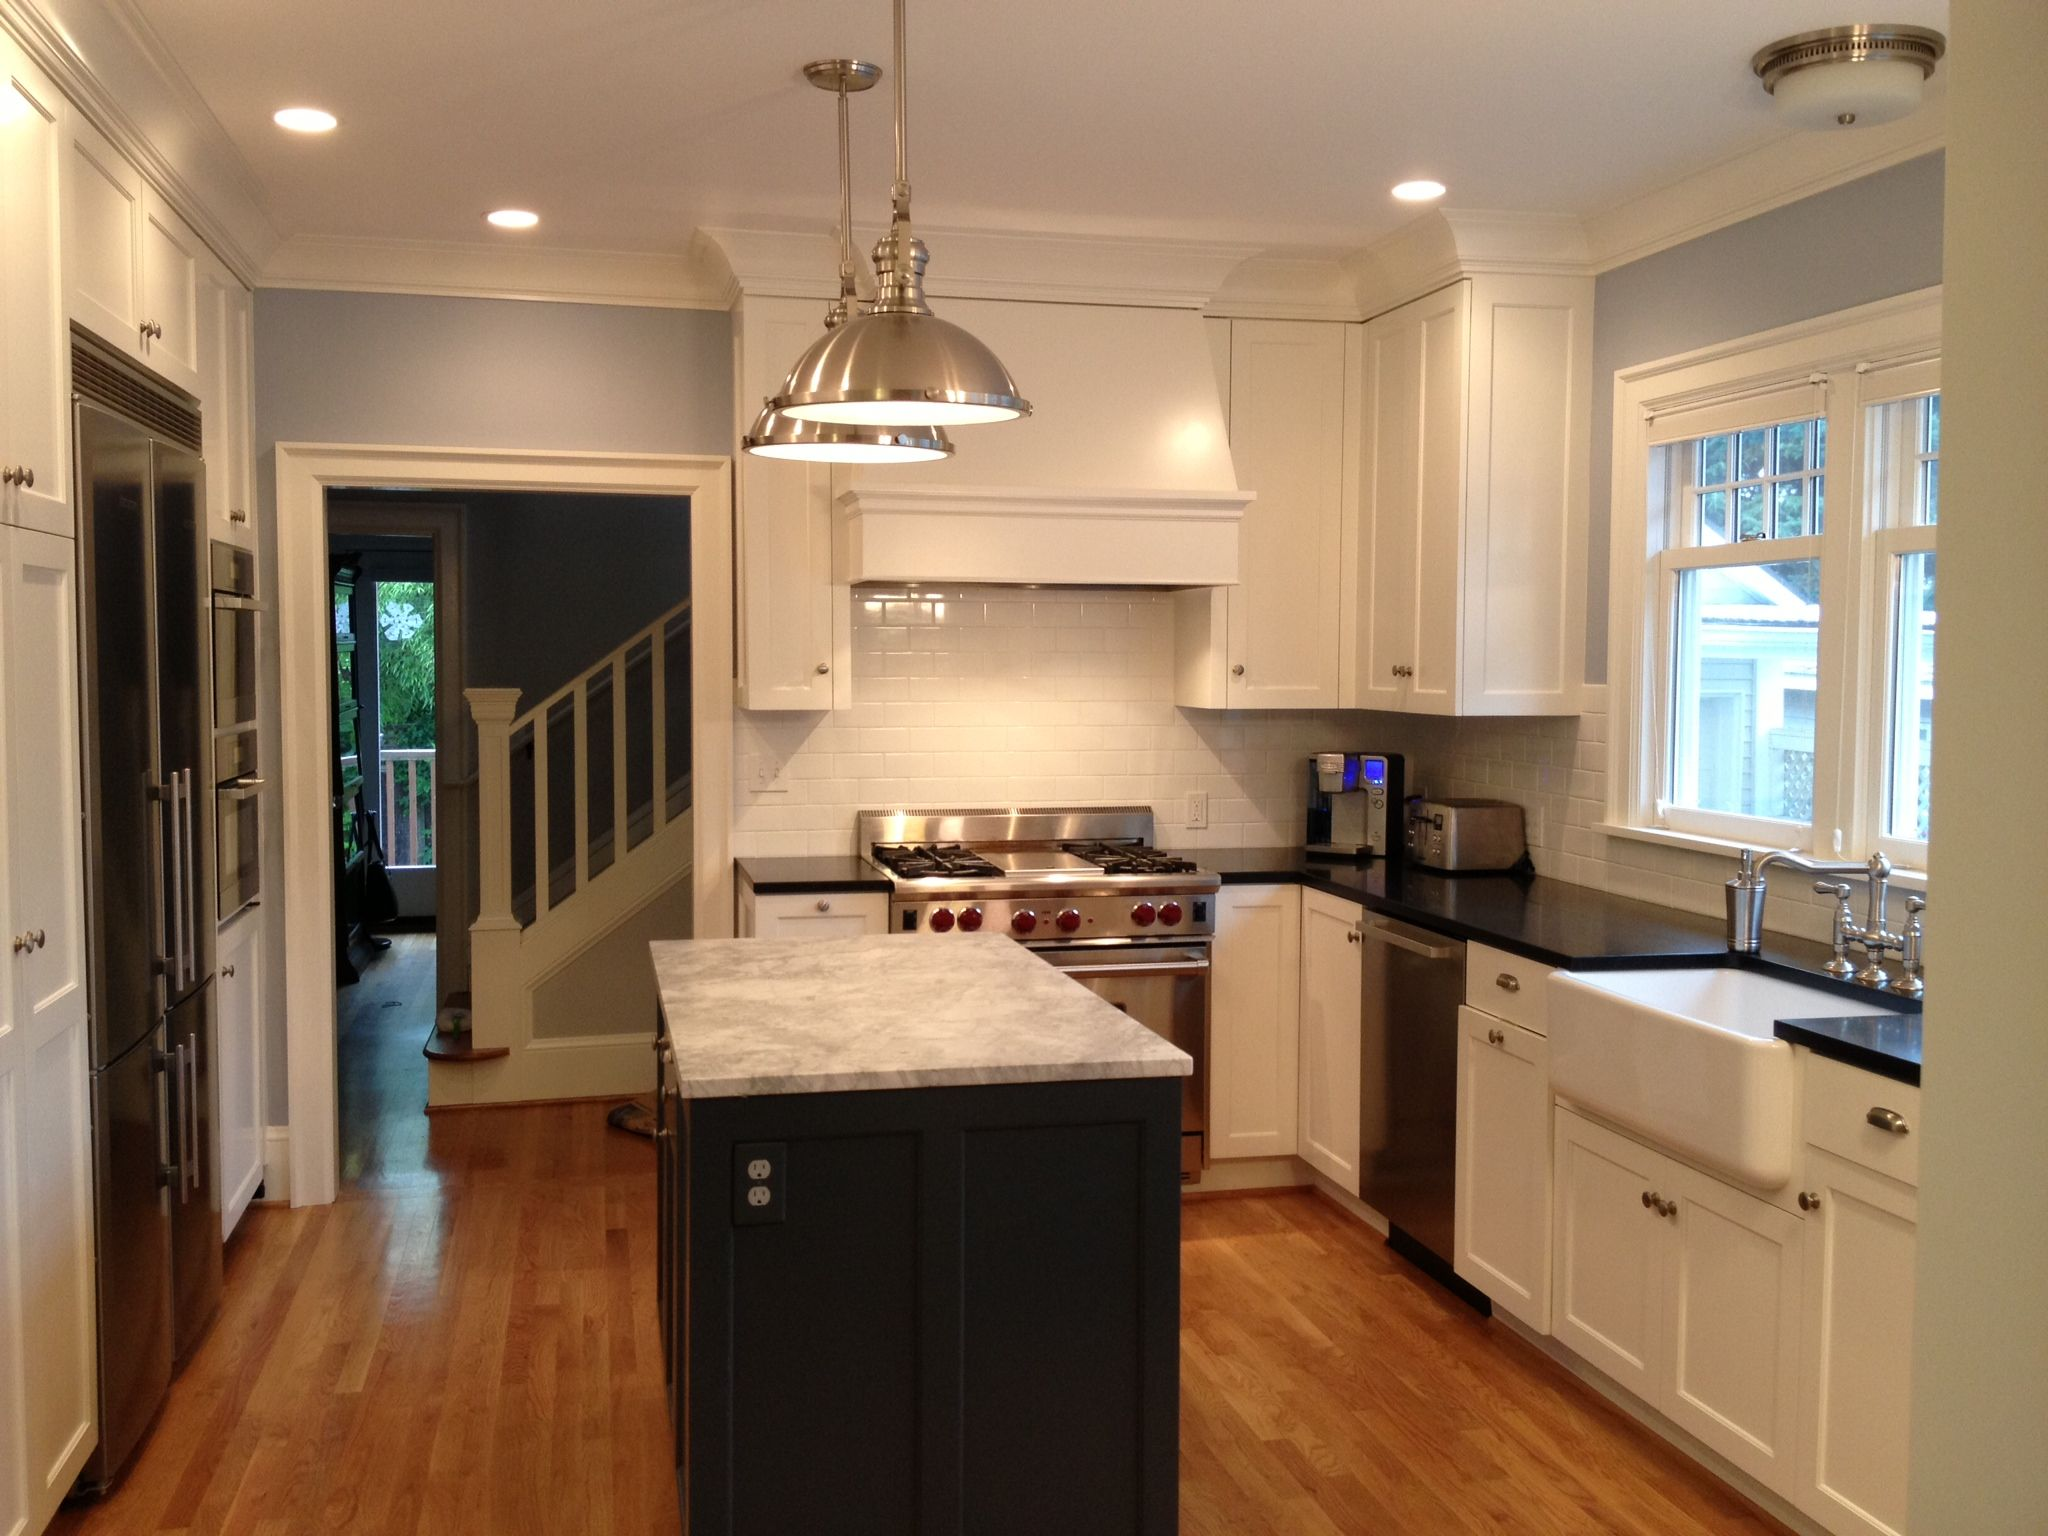 Elegant Full Kitchen View In 1920u0027s Home; White Custom Cabinets; Moonlight Marble  Island With Contrasting